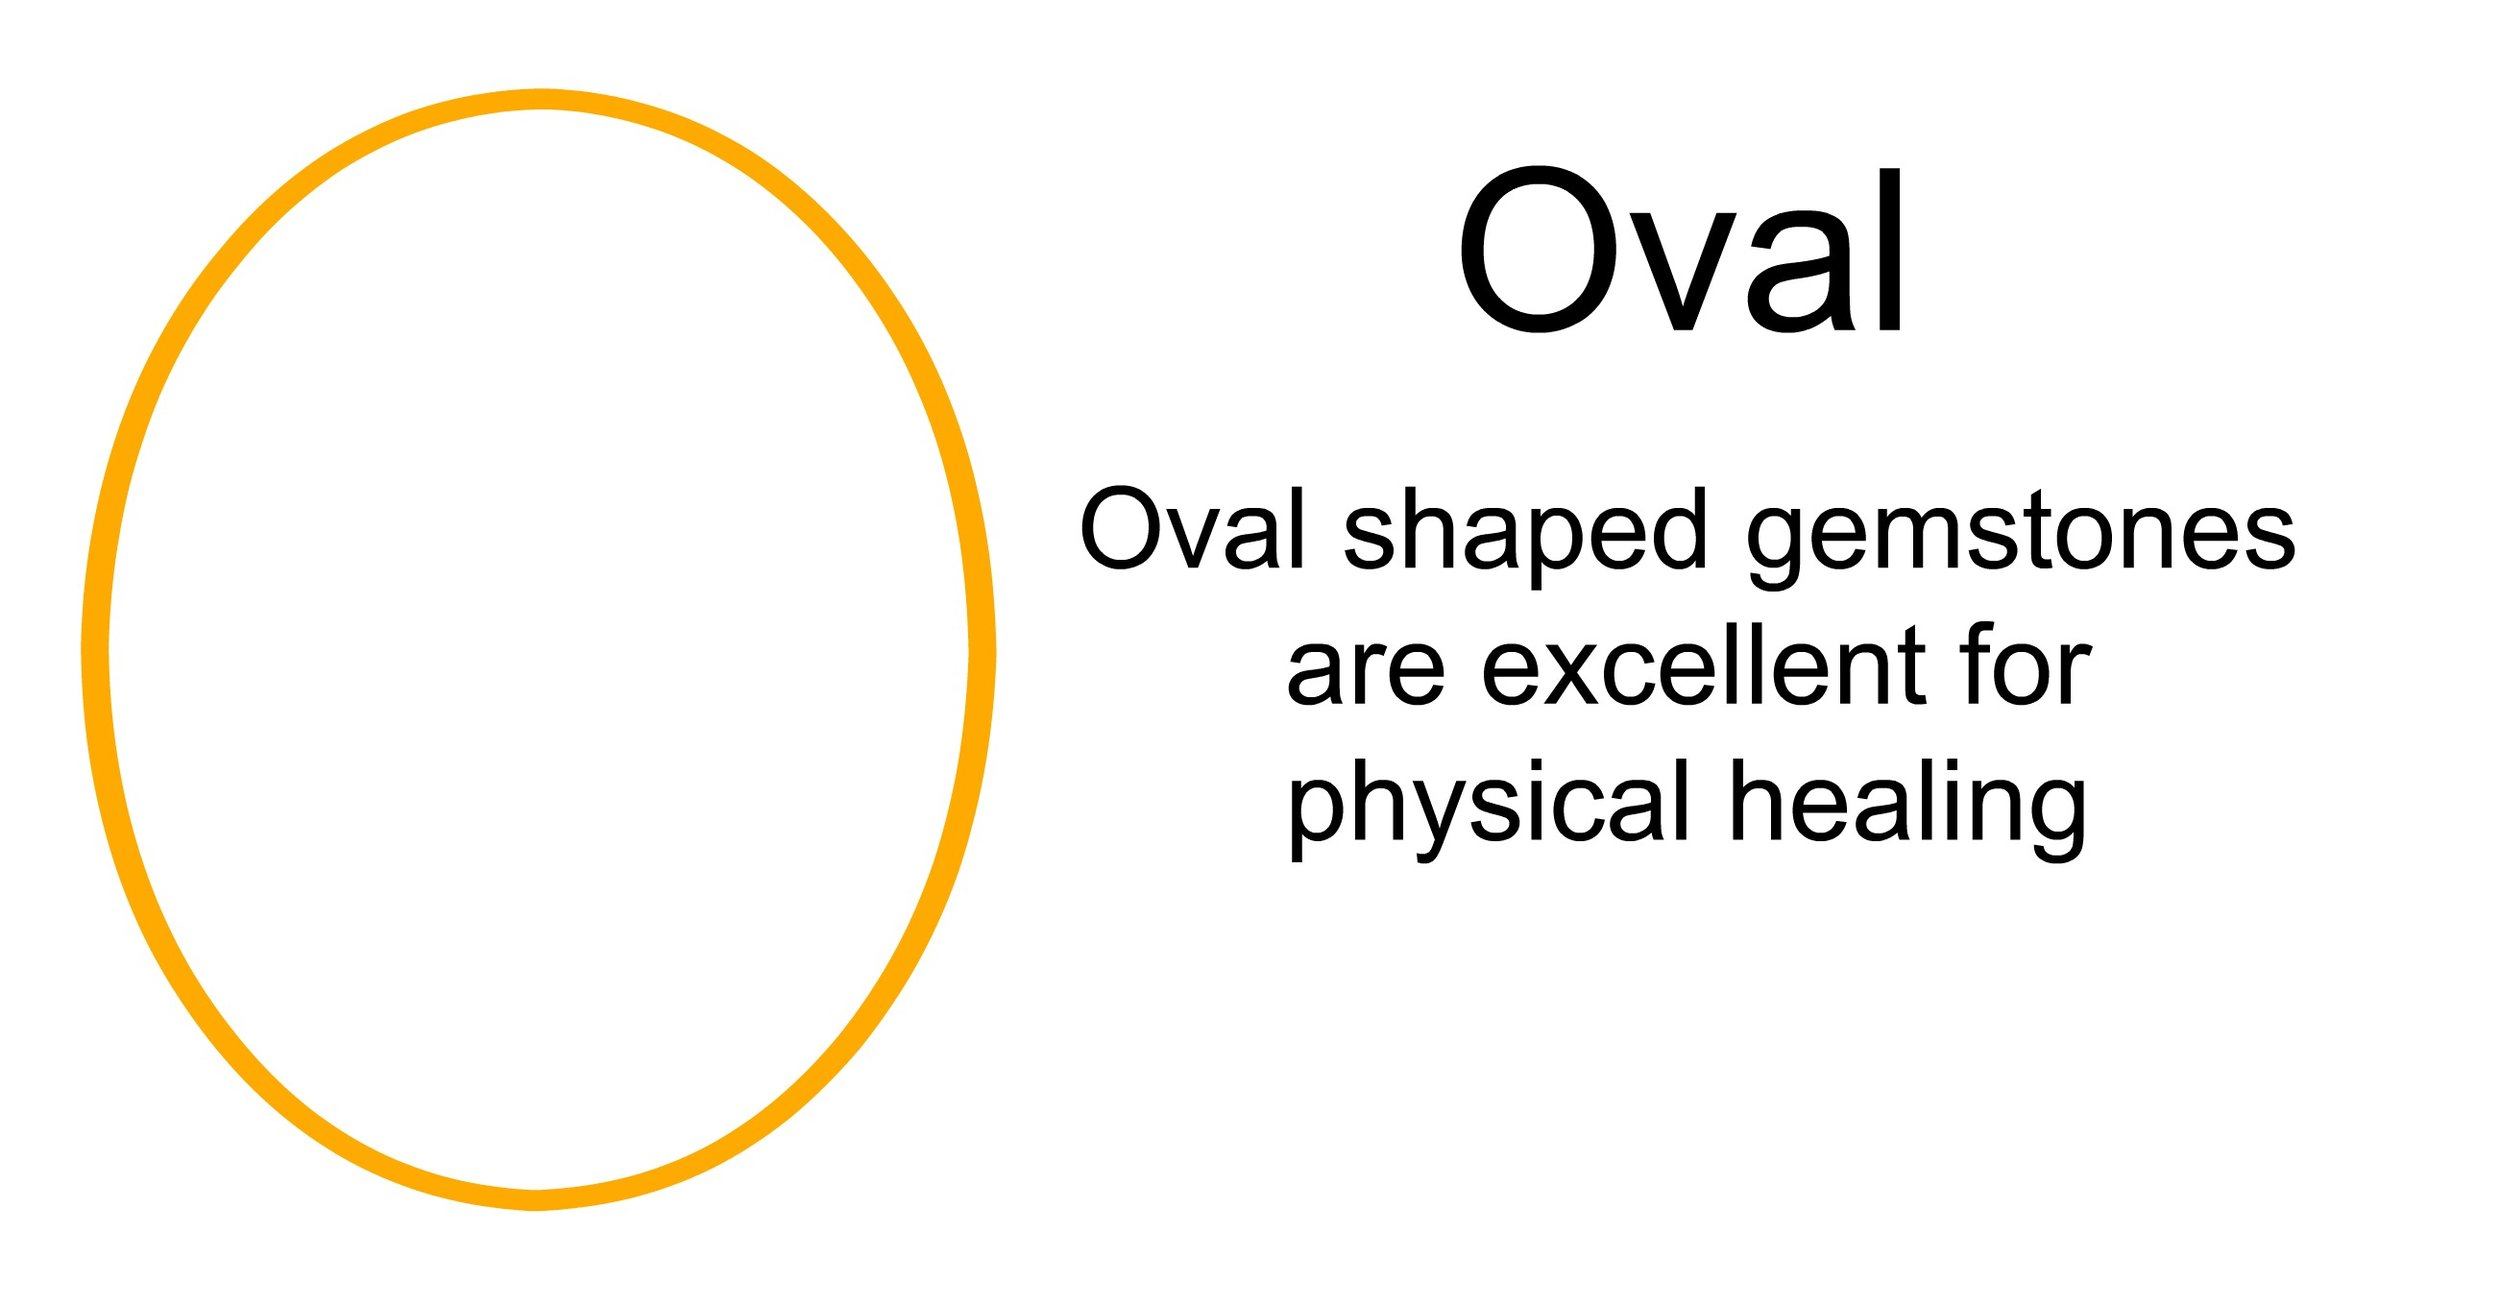 oval shaped gemstones meaning